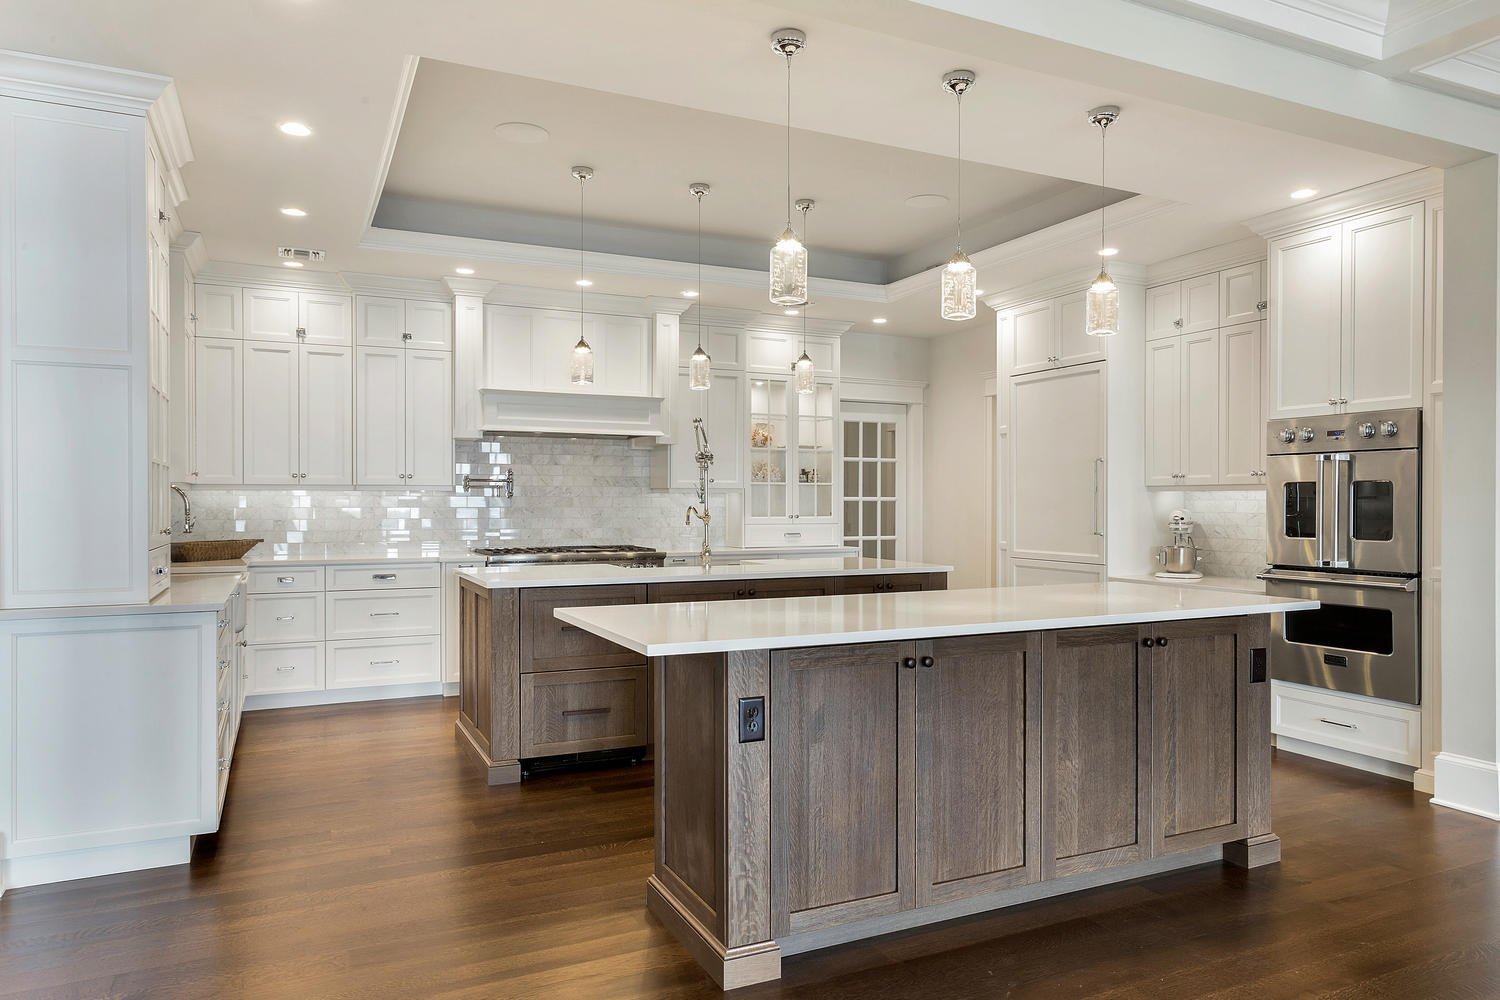 White Custom Kitchen Islands Kitchen Islands & Peninsulas  Design Line Kitchens In Sea Girt Nj